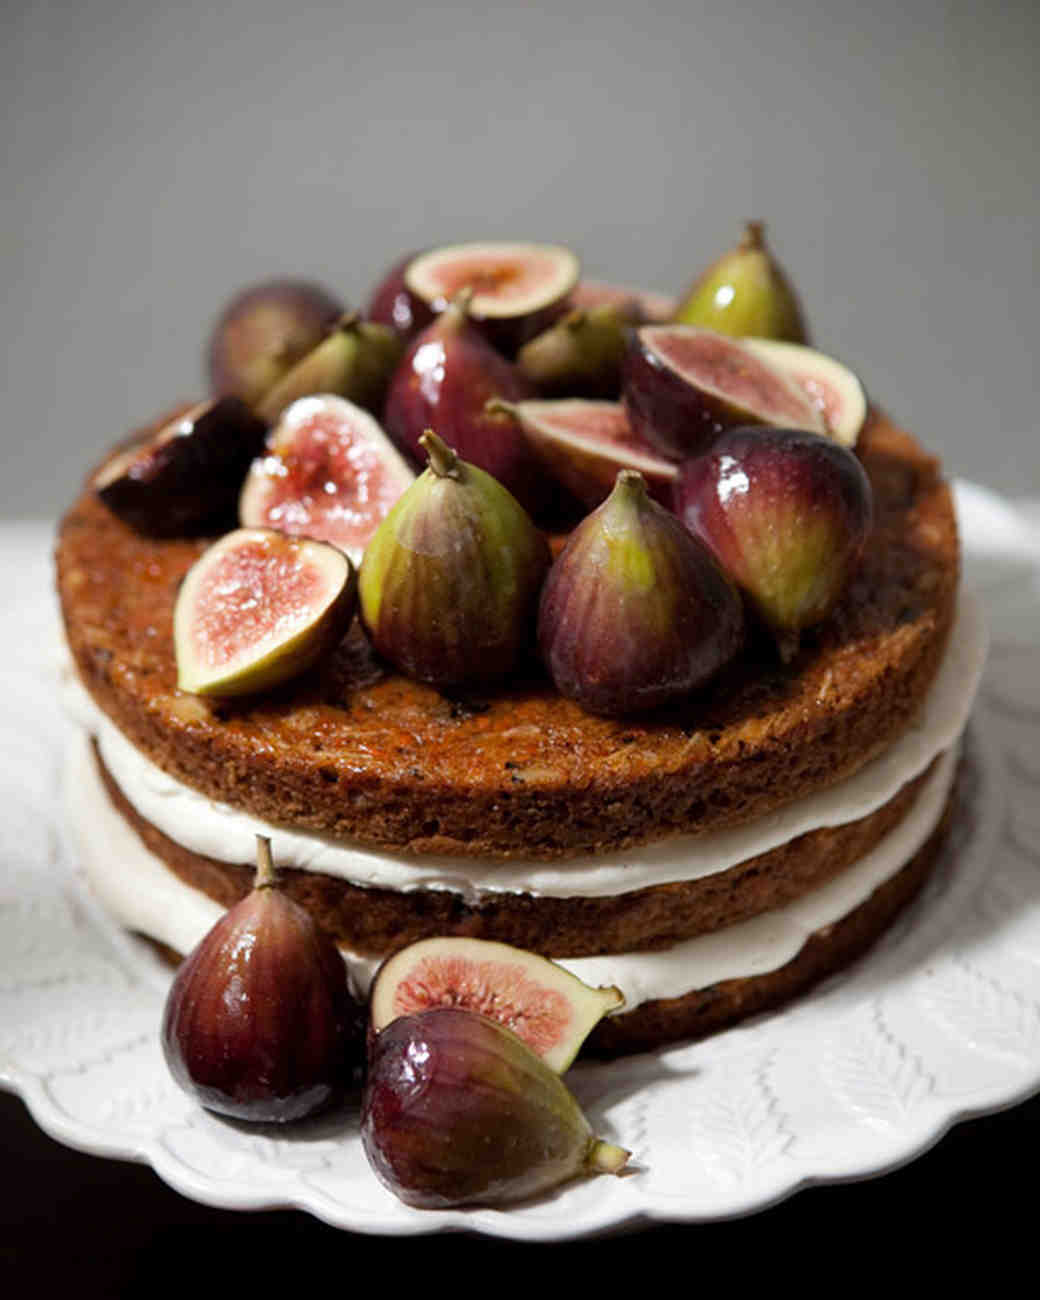 Wedding Carrot Cake with Figs